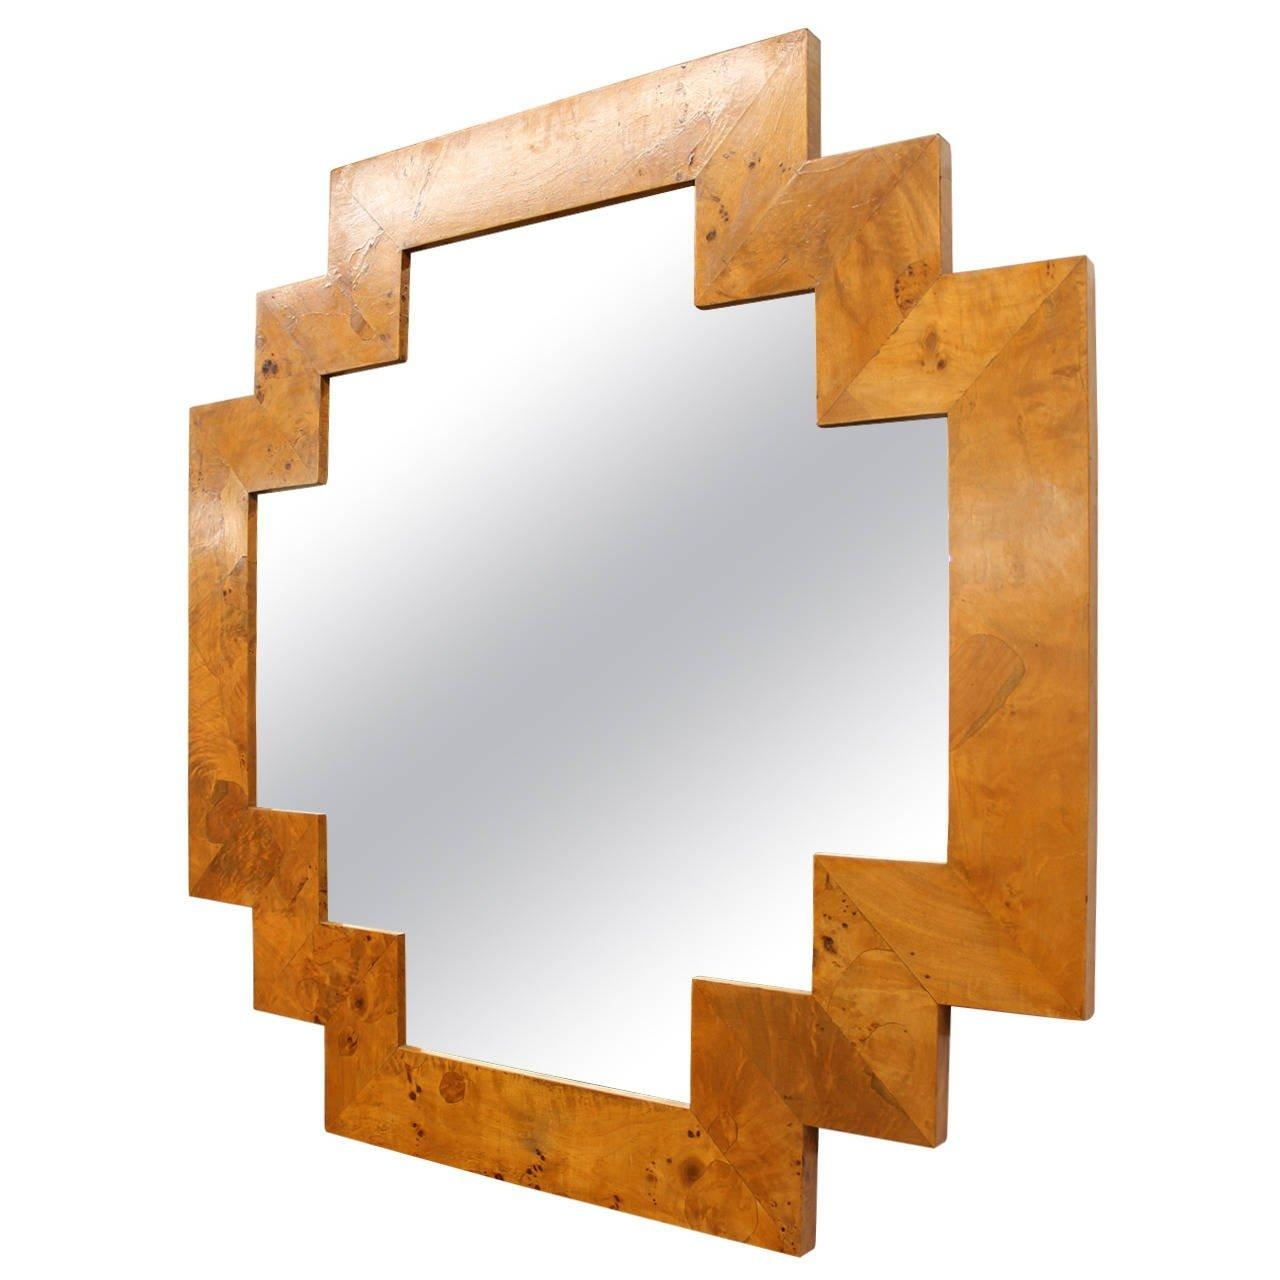 Art Deco Style Geometric Italian Burl Wood Wall Mirror At 1Stdibs For Art Deco Style Mirrors (View 19 of 20)